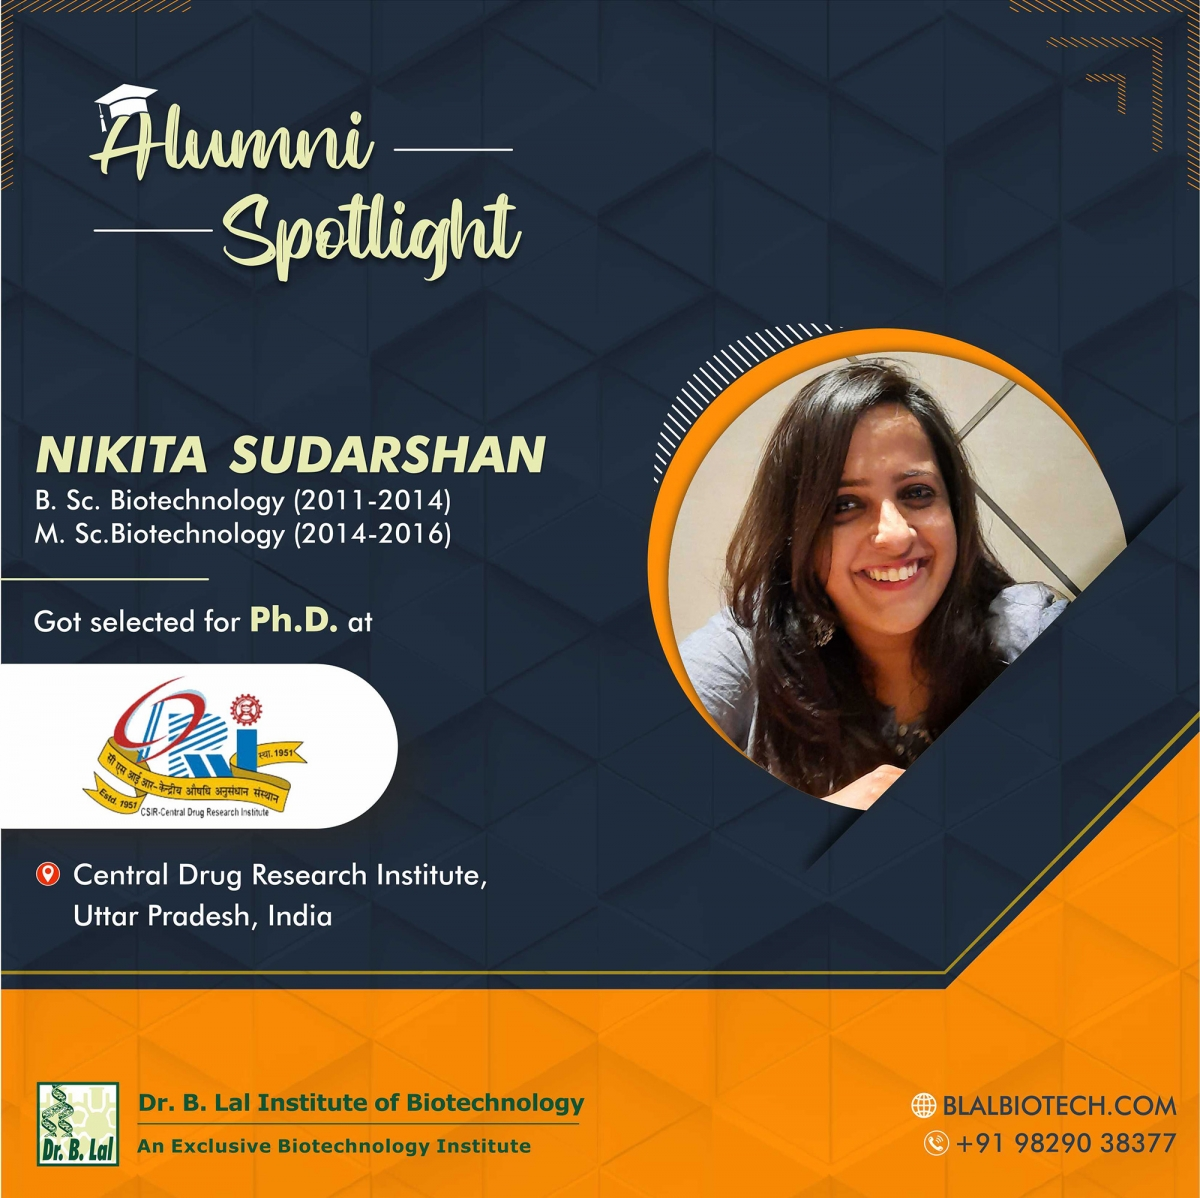 Ms. Nikita Sudarshan | Selected for Ph.D. at Central Drug Research Institute